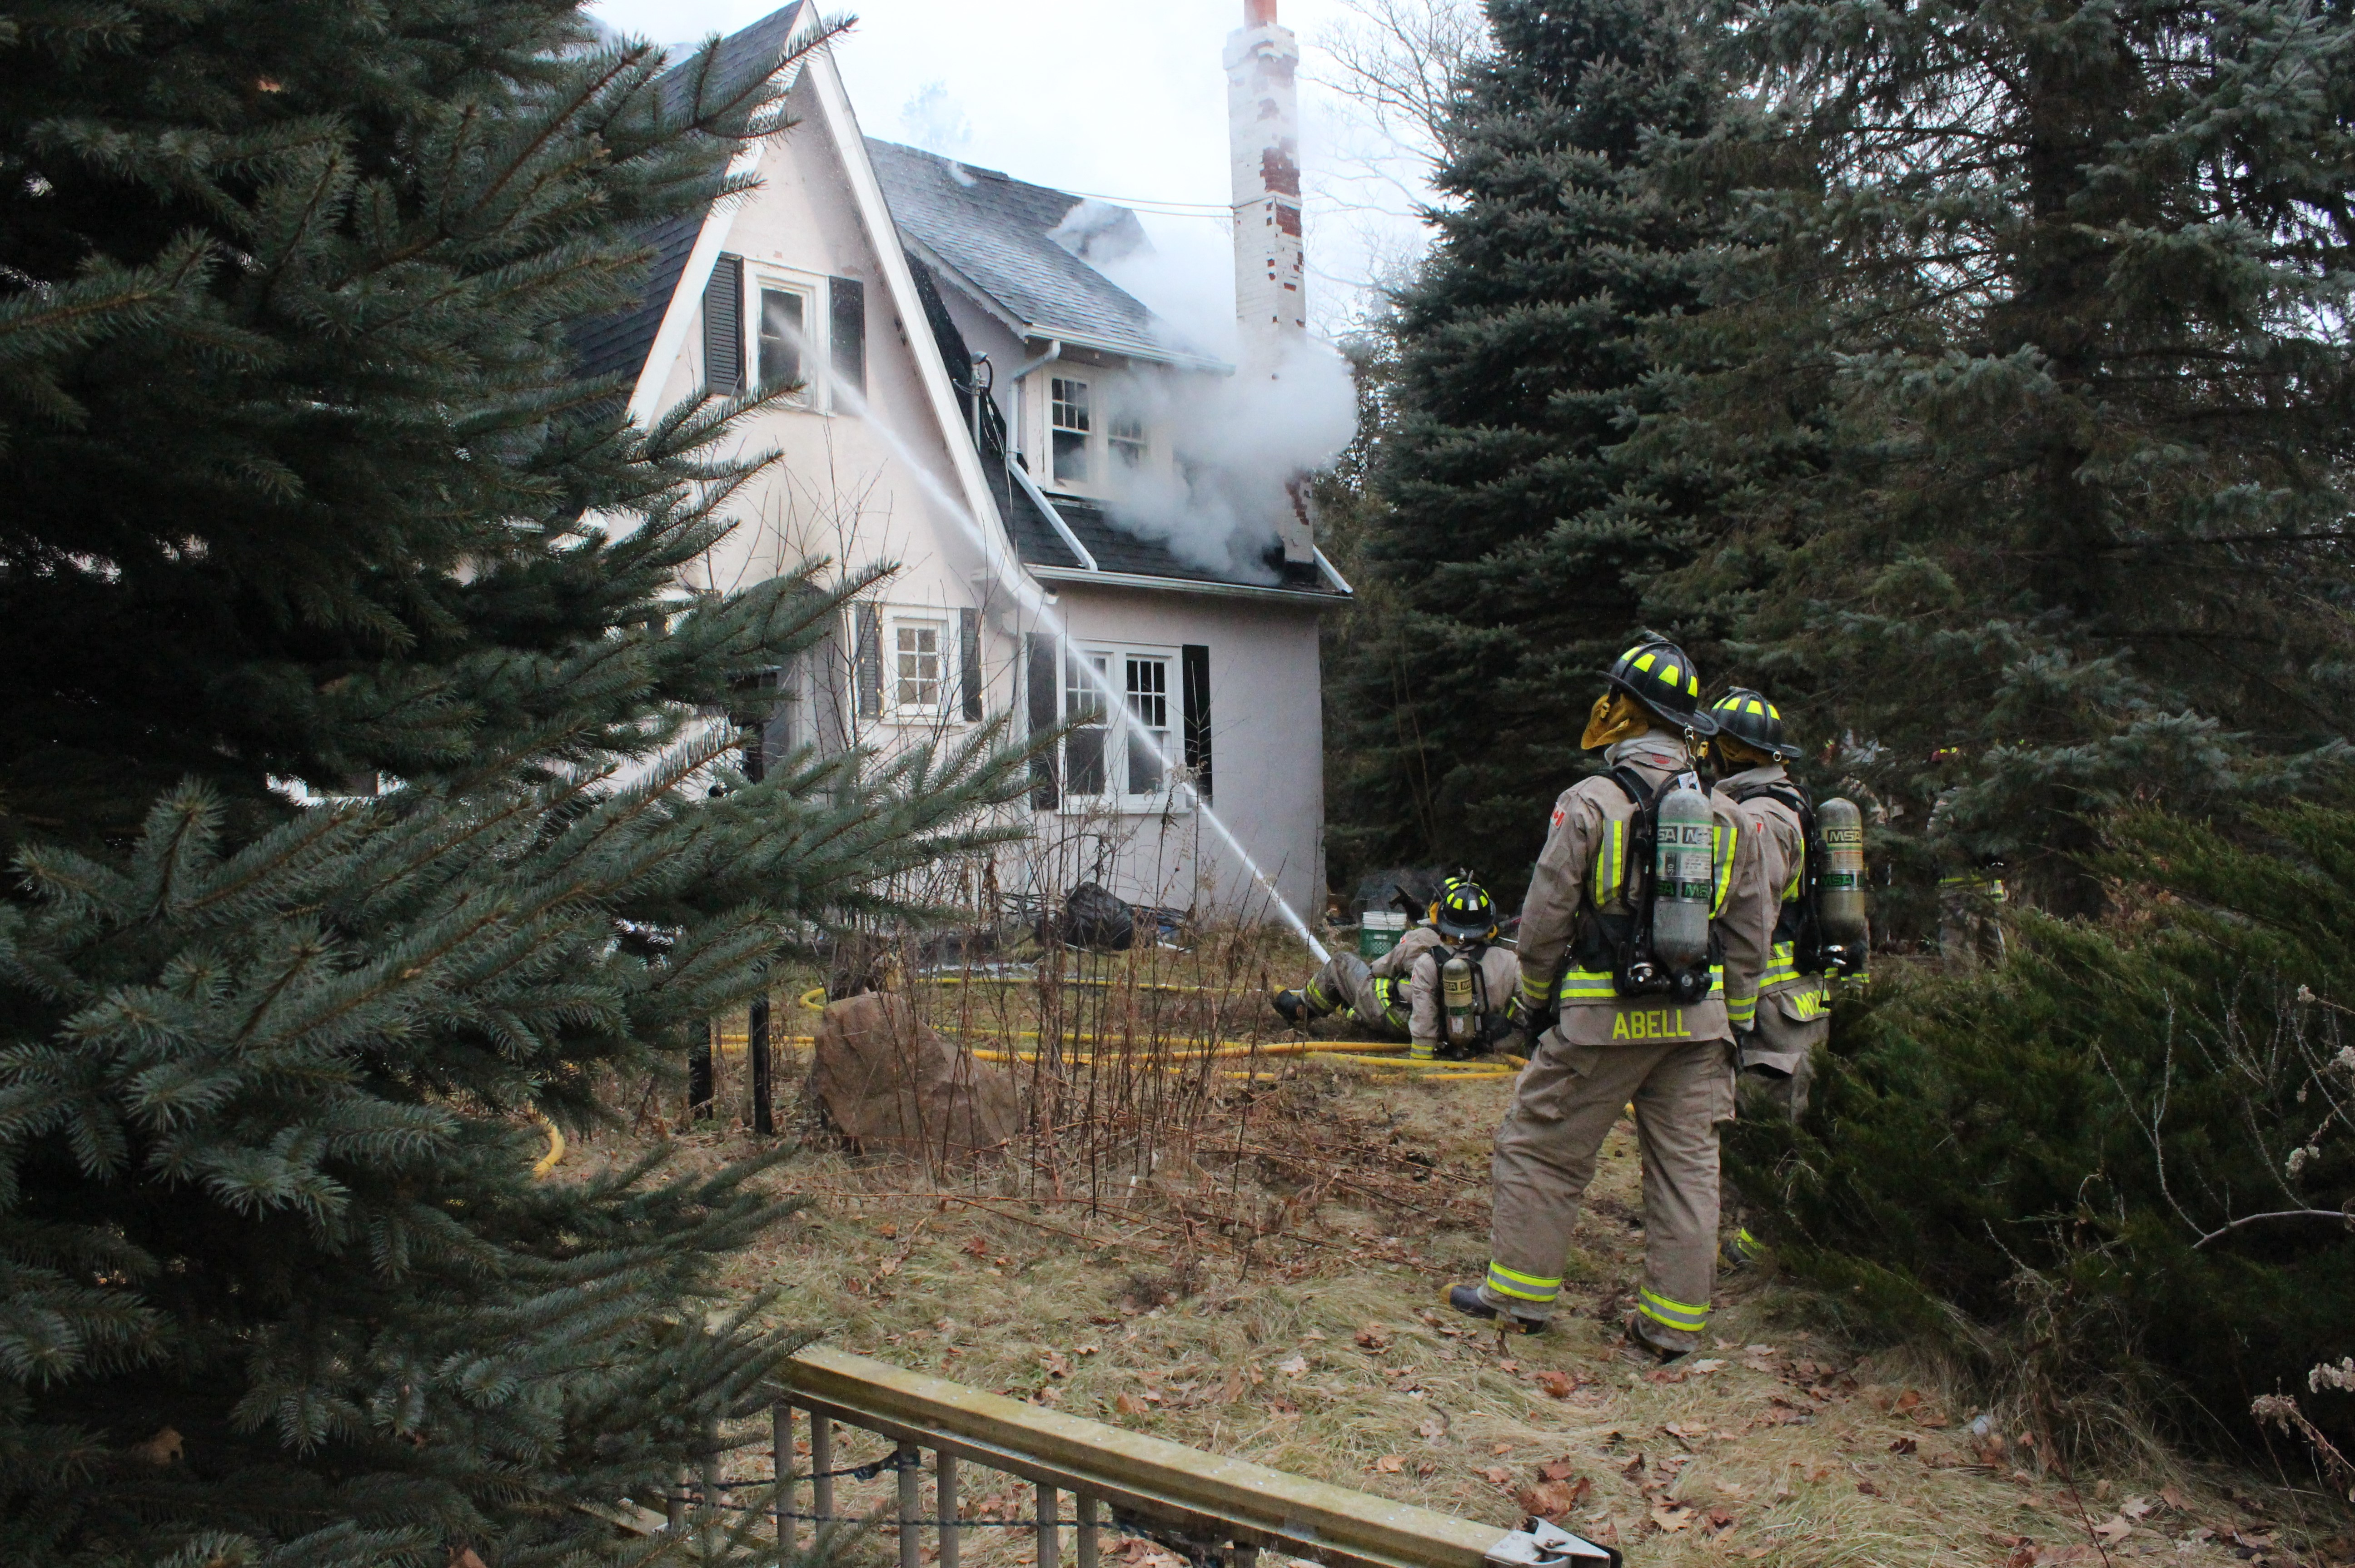 Cannington house fire likely started due to electrical issue, owner says